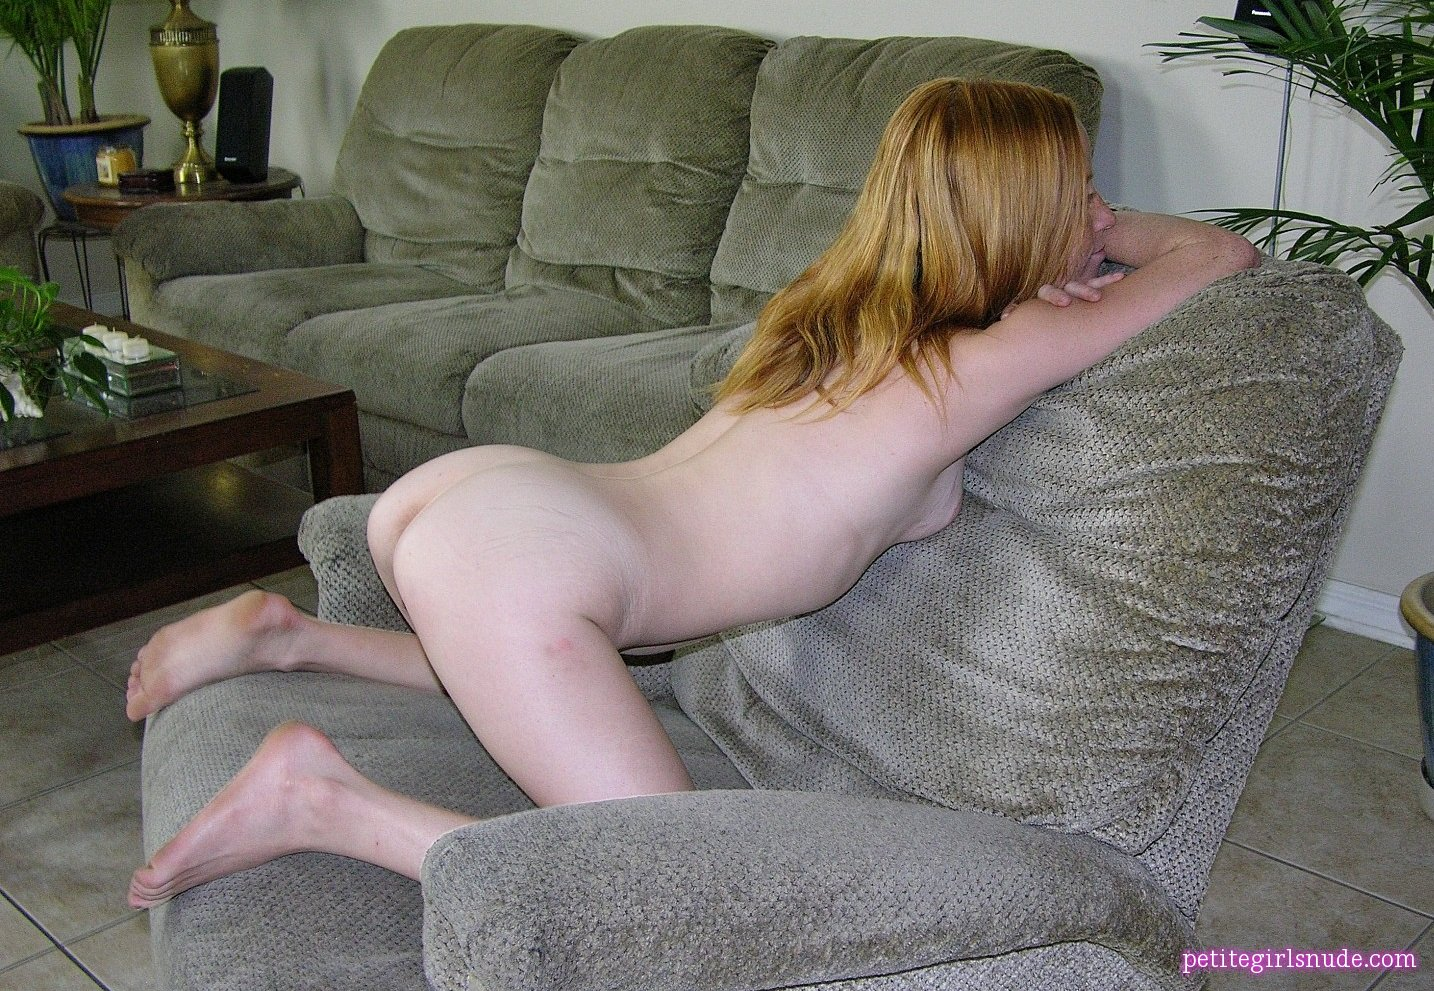 Alyssa Hart Tiny Redhead Nude Pics And Biography - Petite Girls Nude-3540